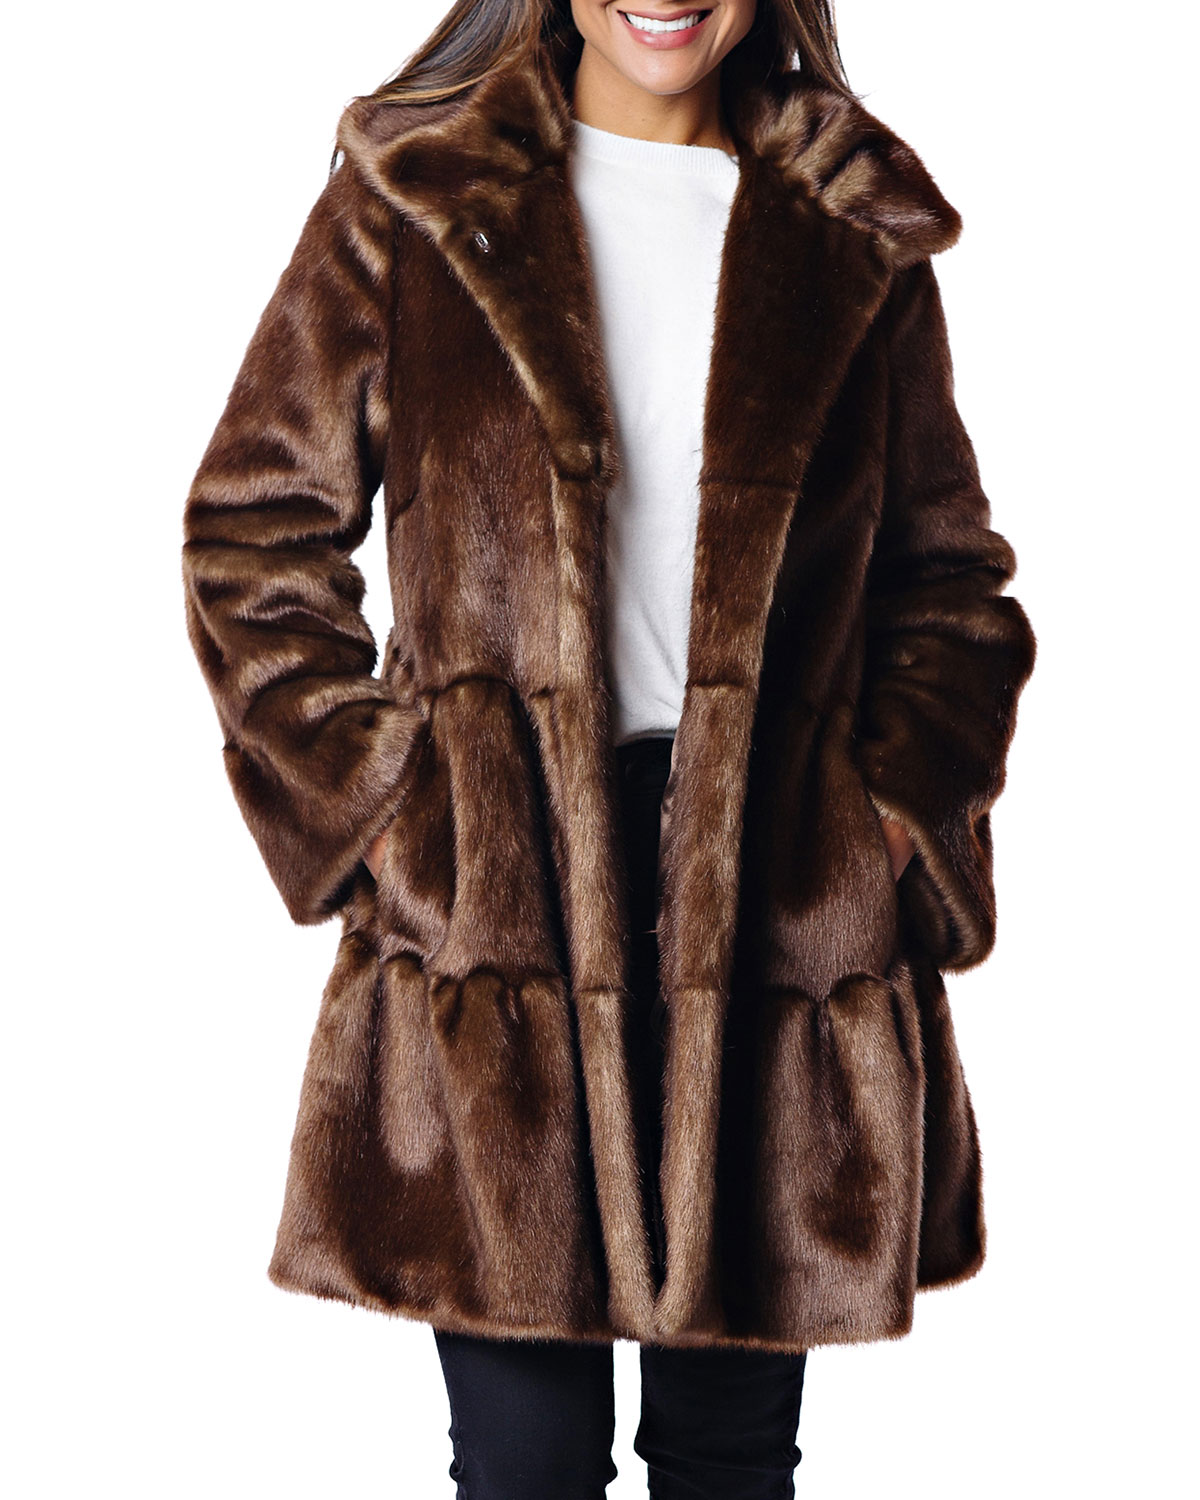 Designer Desirables: Amazing New Faux Fur Styles.   Milled